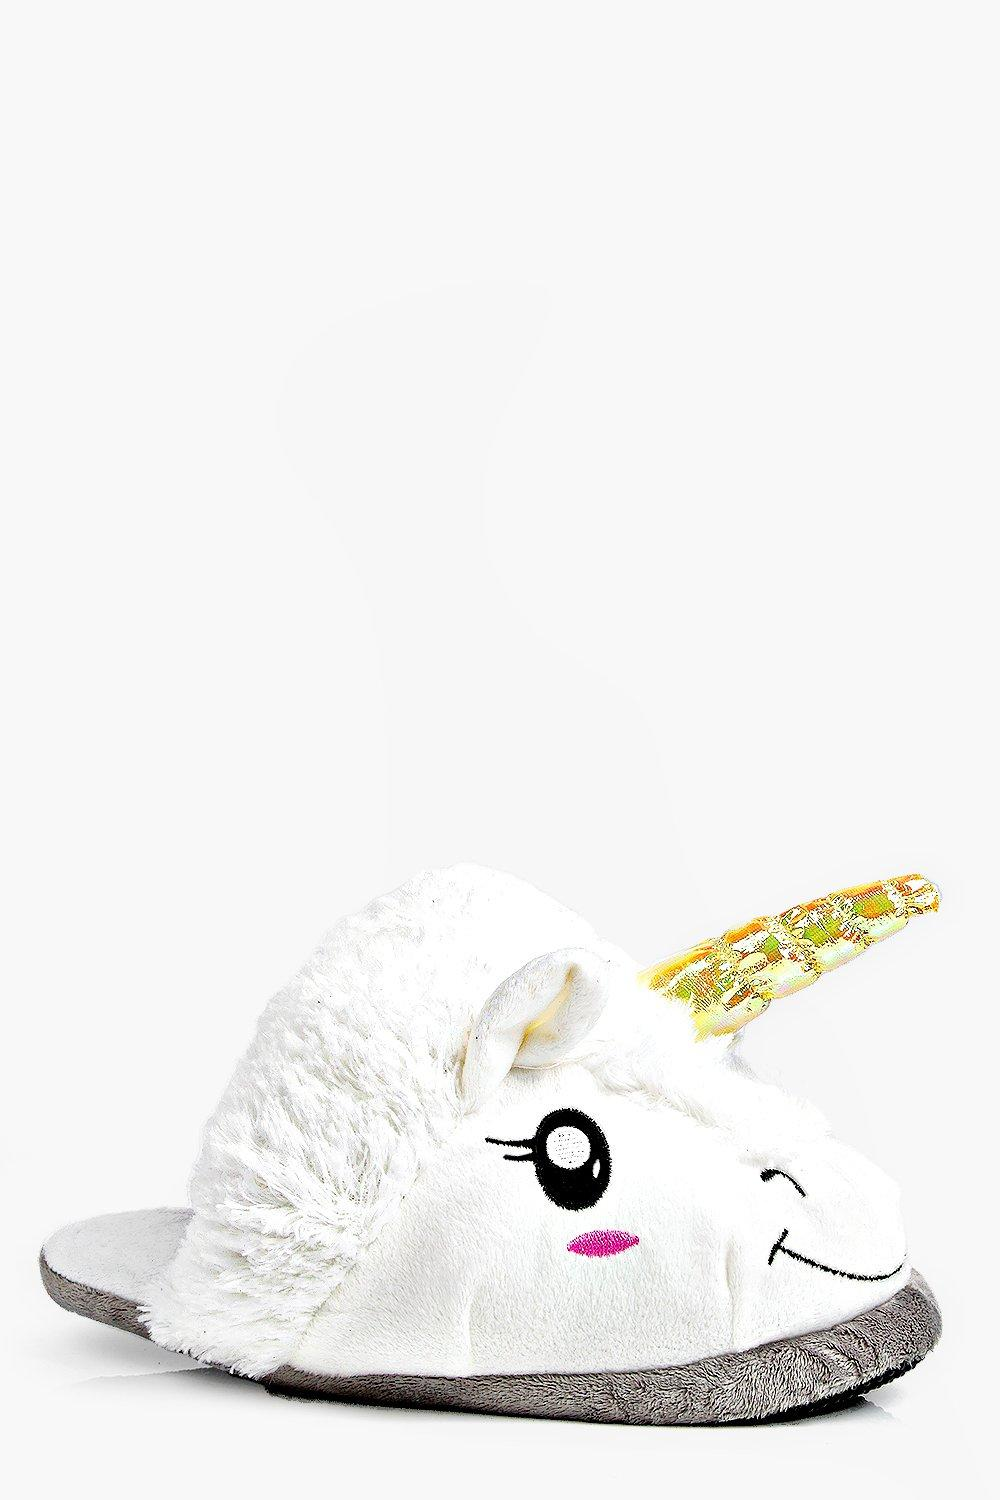 31a81f1bd2 Phoebe Unicorn 3D Slippers